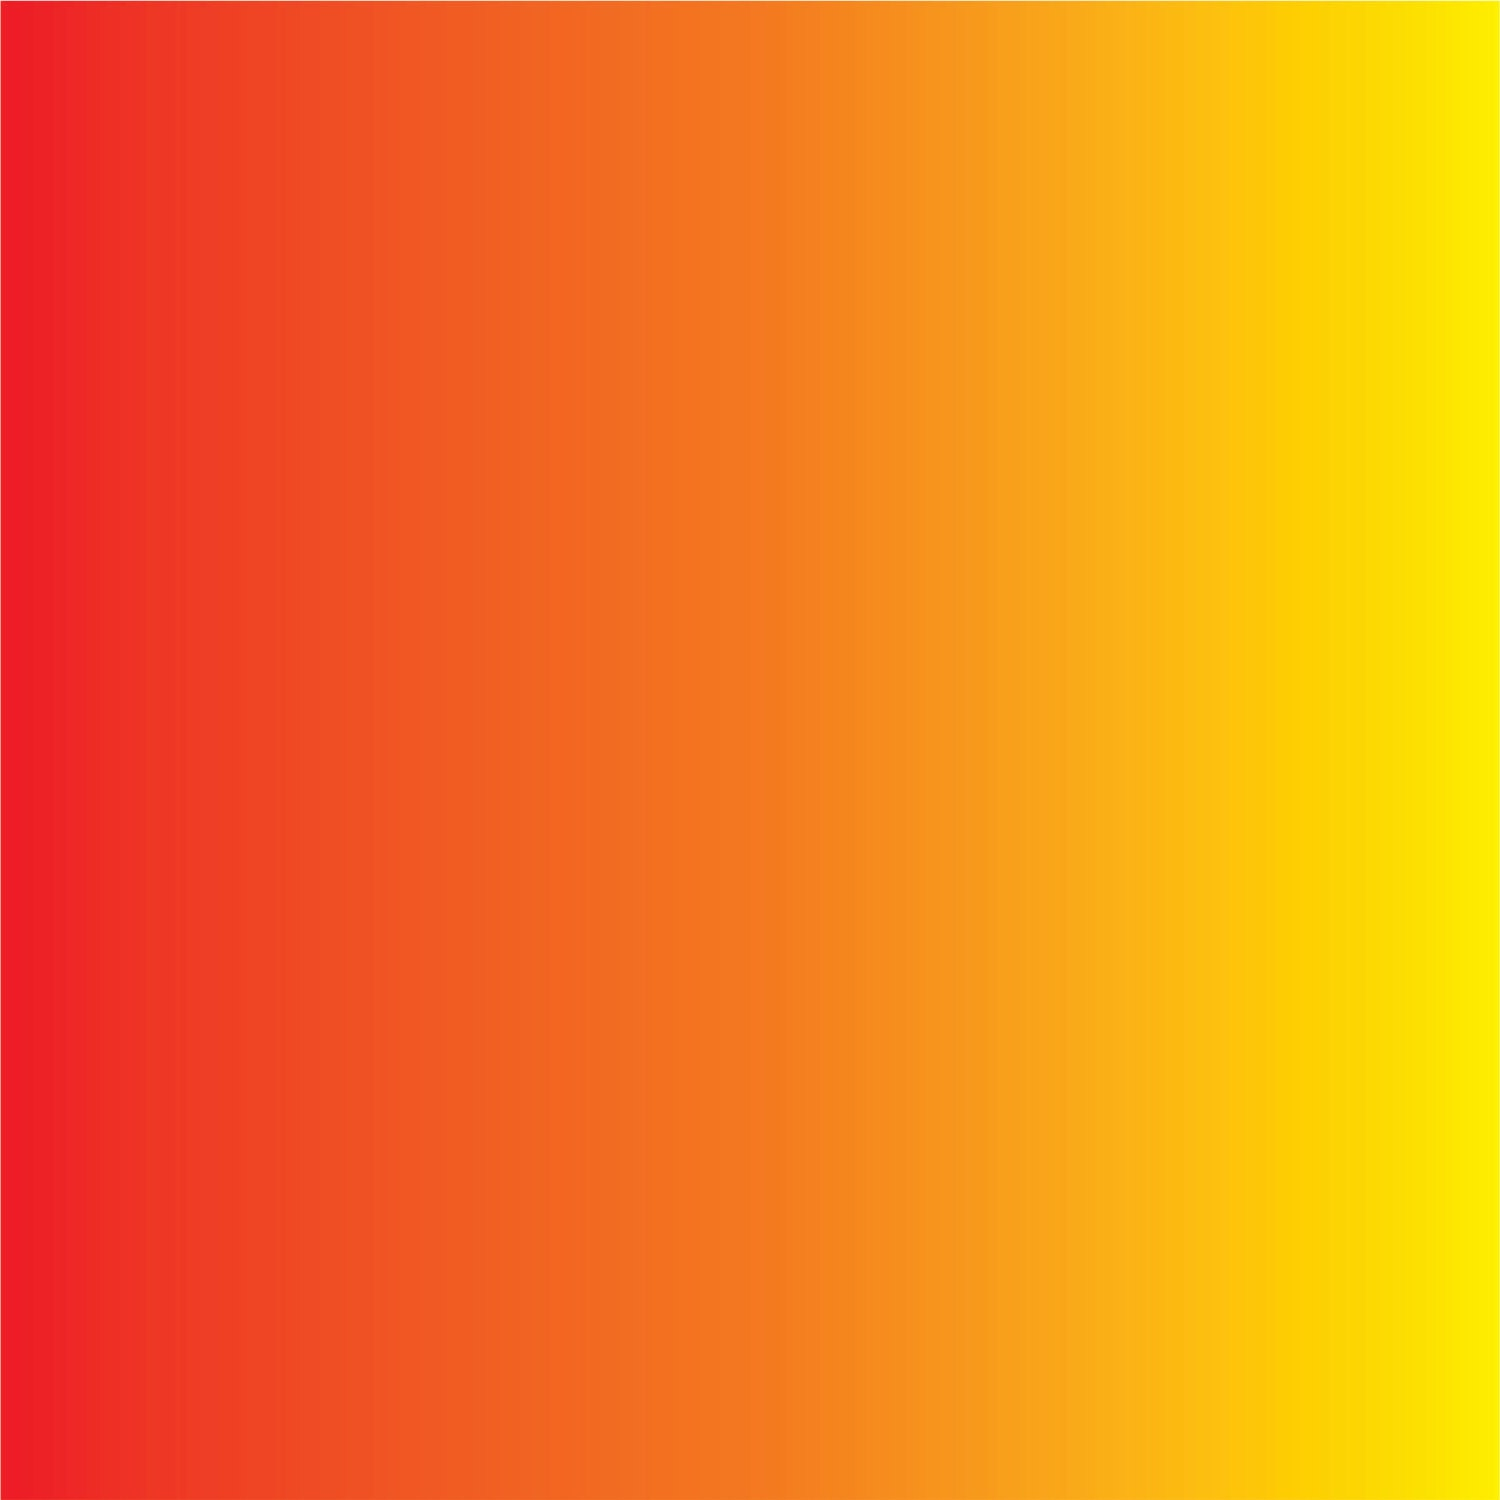 Red Orange And Yellow Ombre Print Heat Transfer Or Adhesive